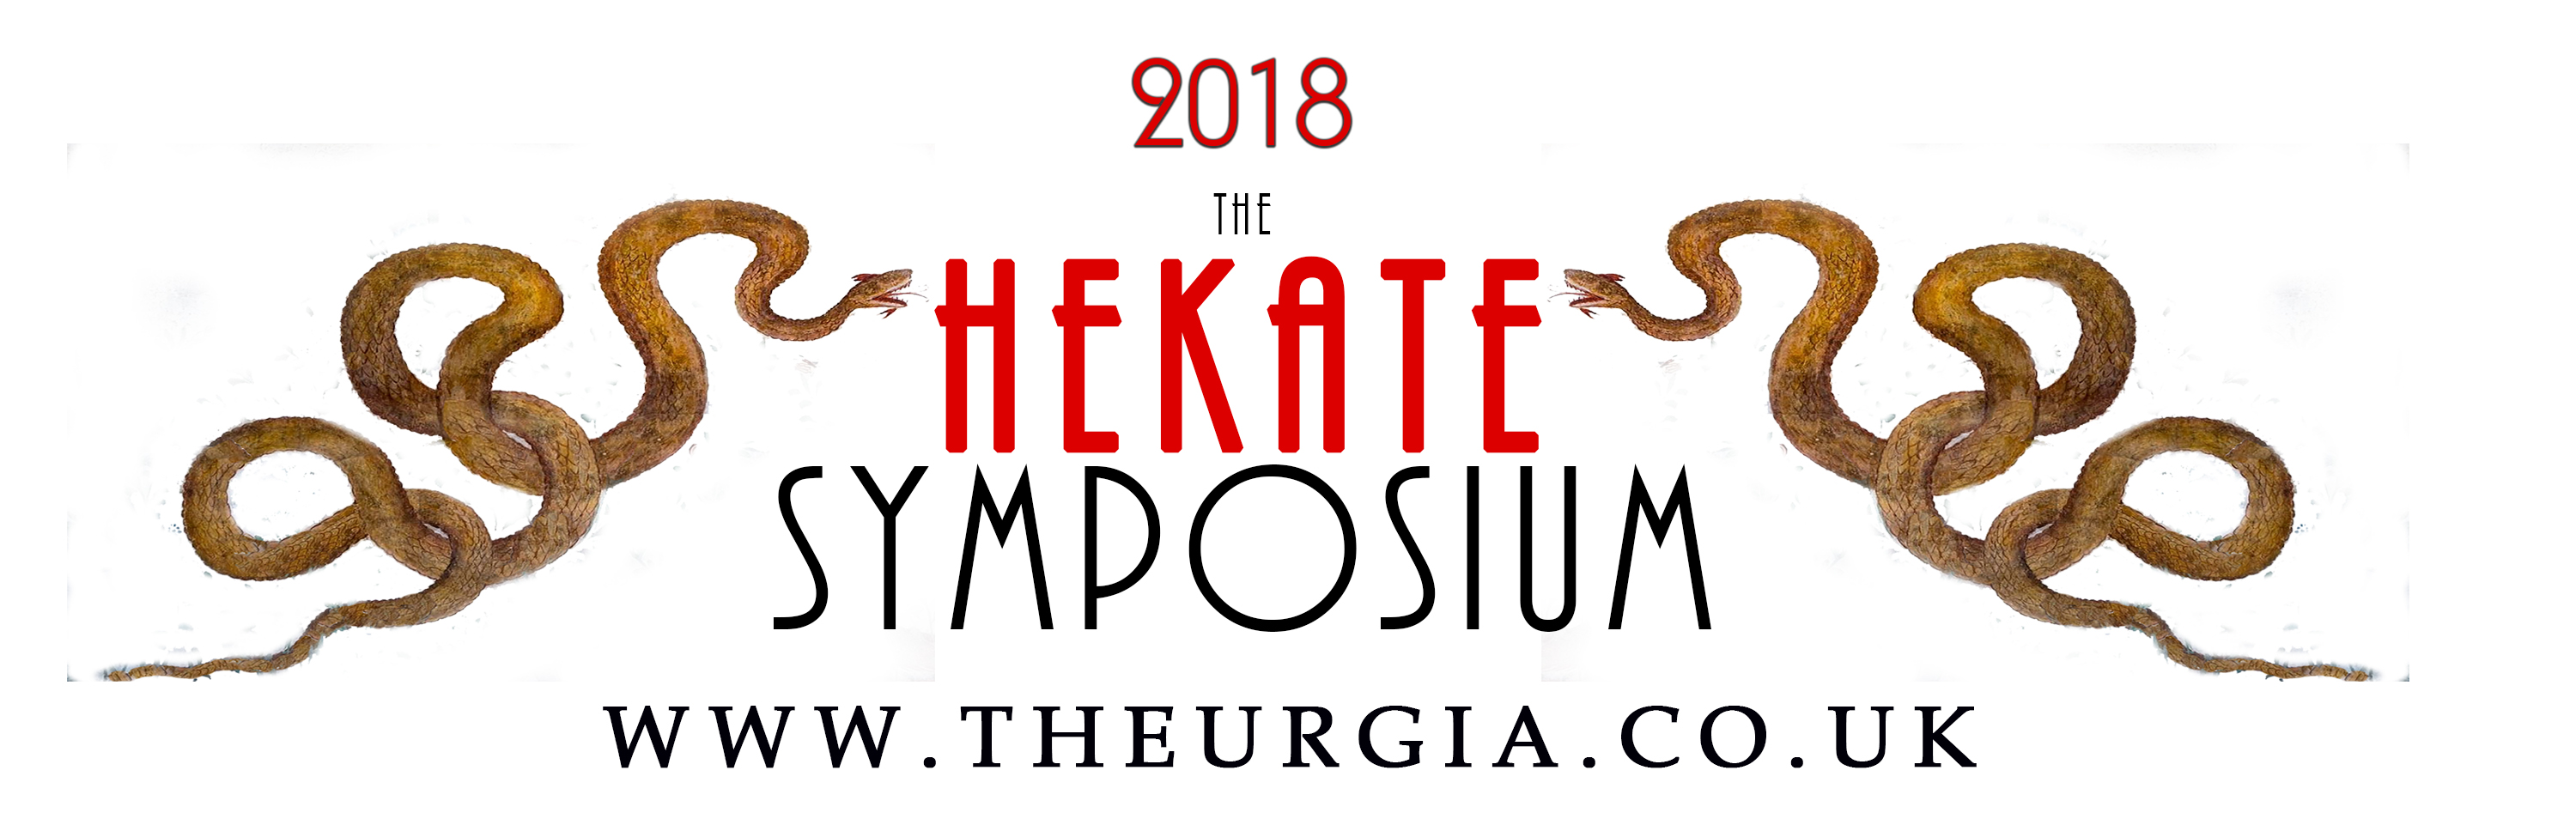 The Hekate Symposium - Glastonbury 2018 - A Goddess Festival / Conference dedicated entirely to the Triple Formed Goddess of the Heavens, Oceans and Earth - the Goddess of the Crossroads, Hekate.